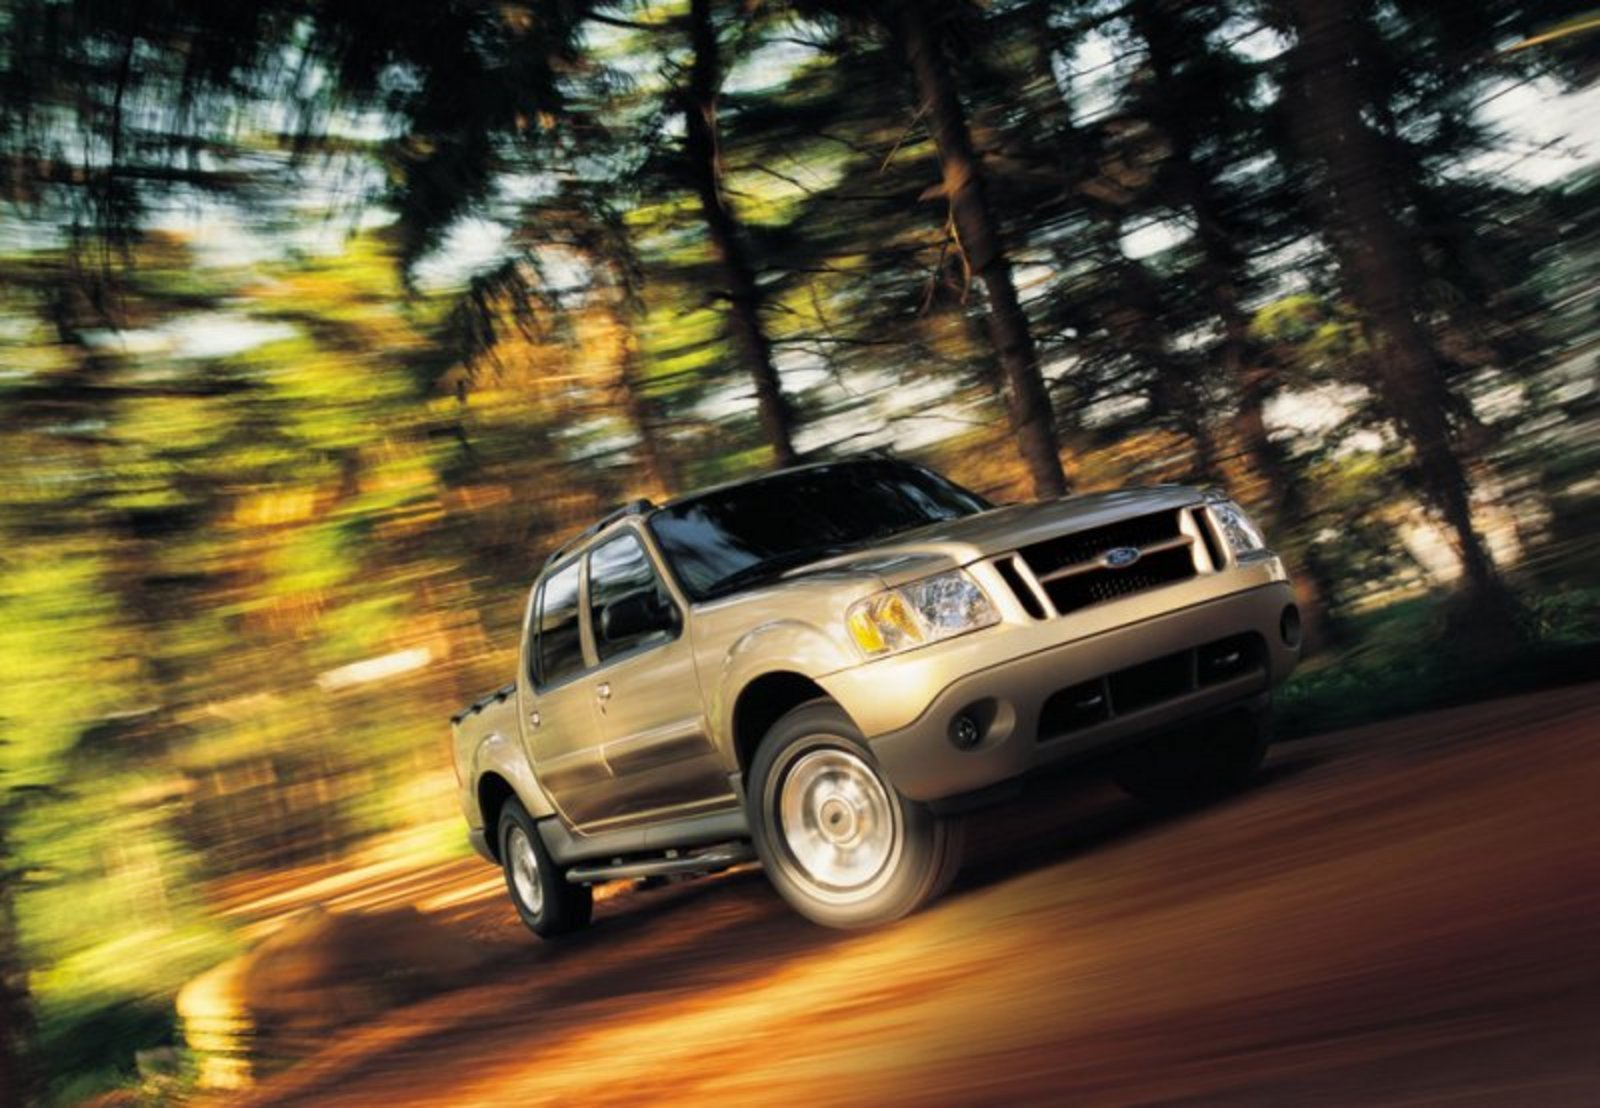 2001 - 2005 Ford Explorer Sport Trac Review - Top Speed